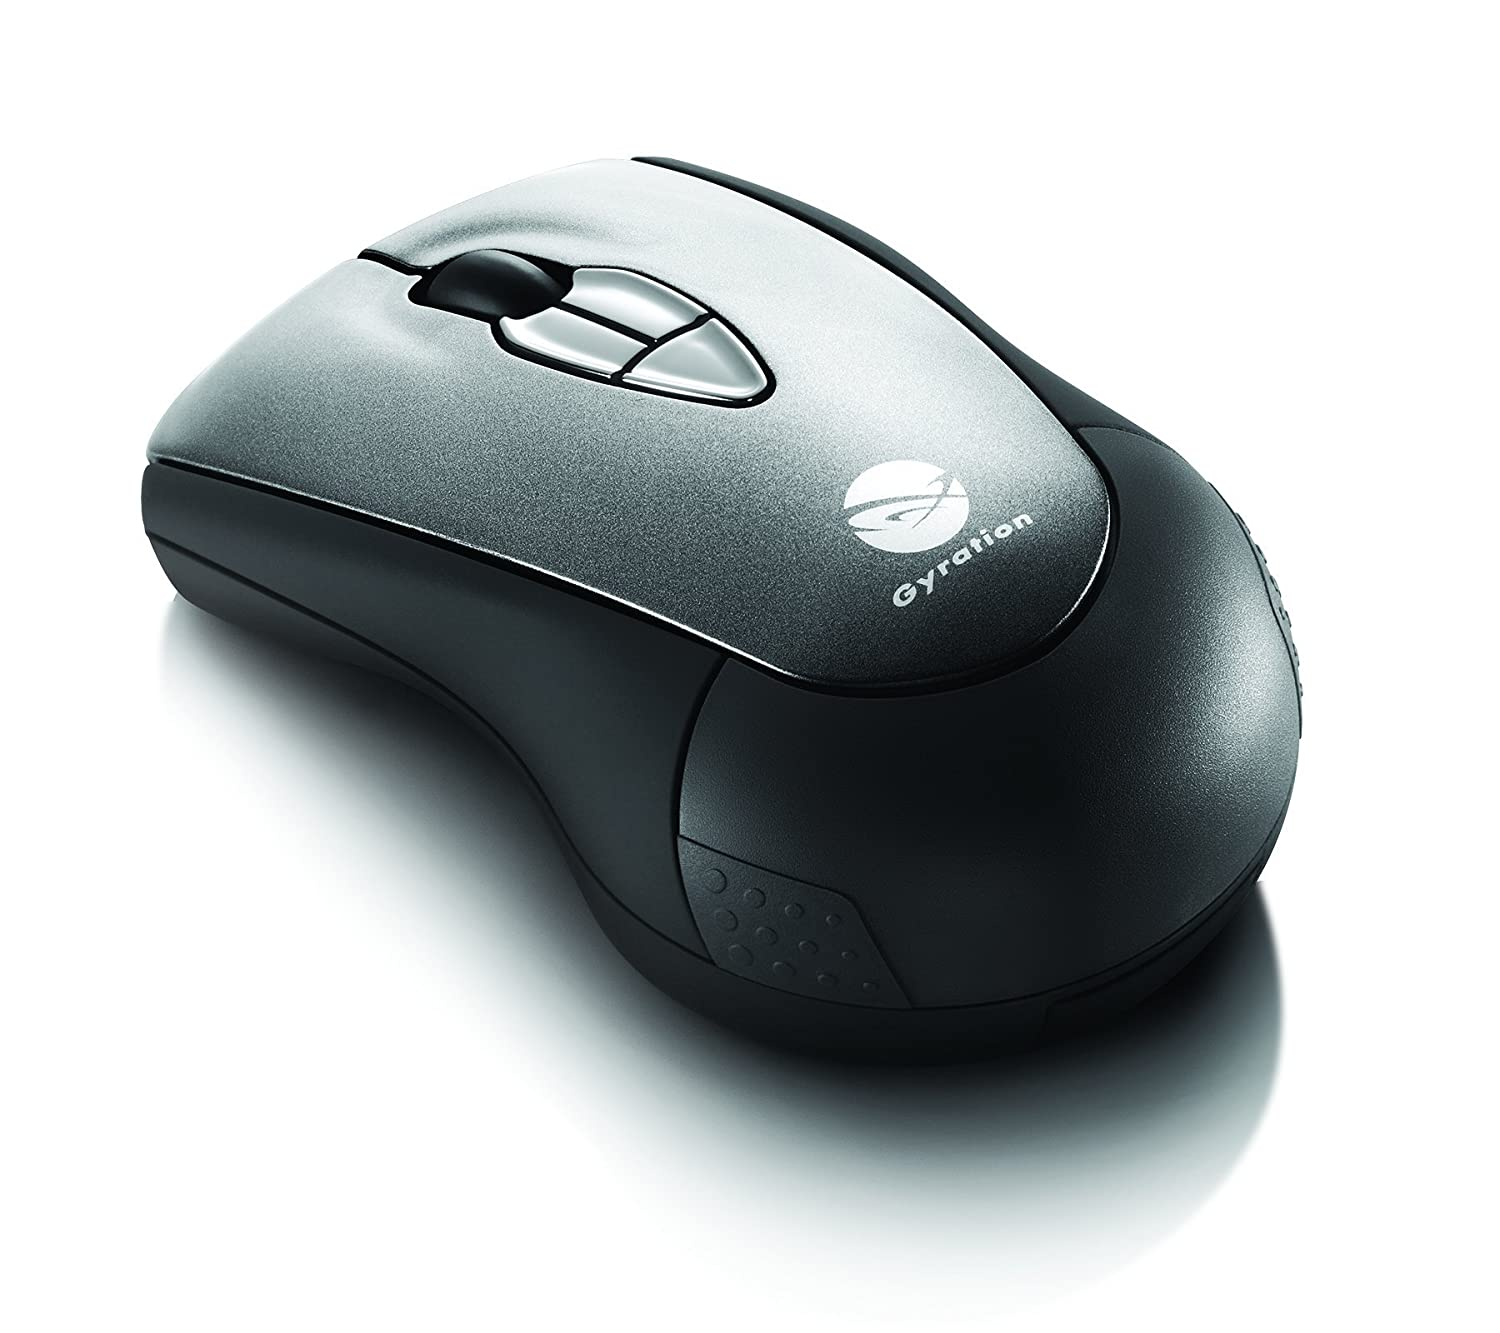 Amazon.com: Gyration Wireless Air Mouse Mobile Compatible with Mac and PC  (GYM2200): Computers & Accessories